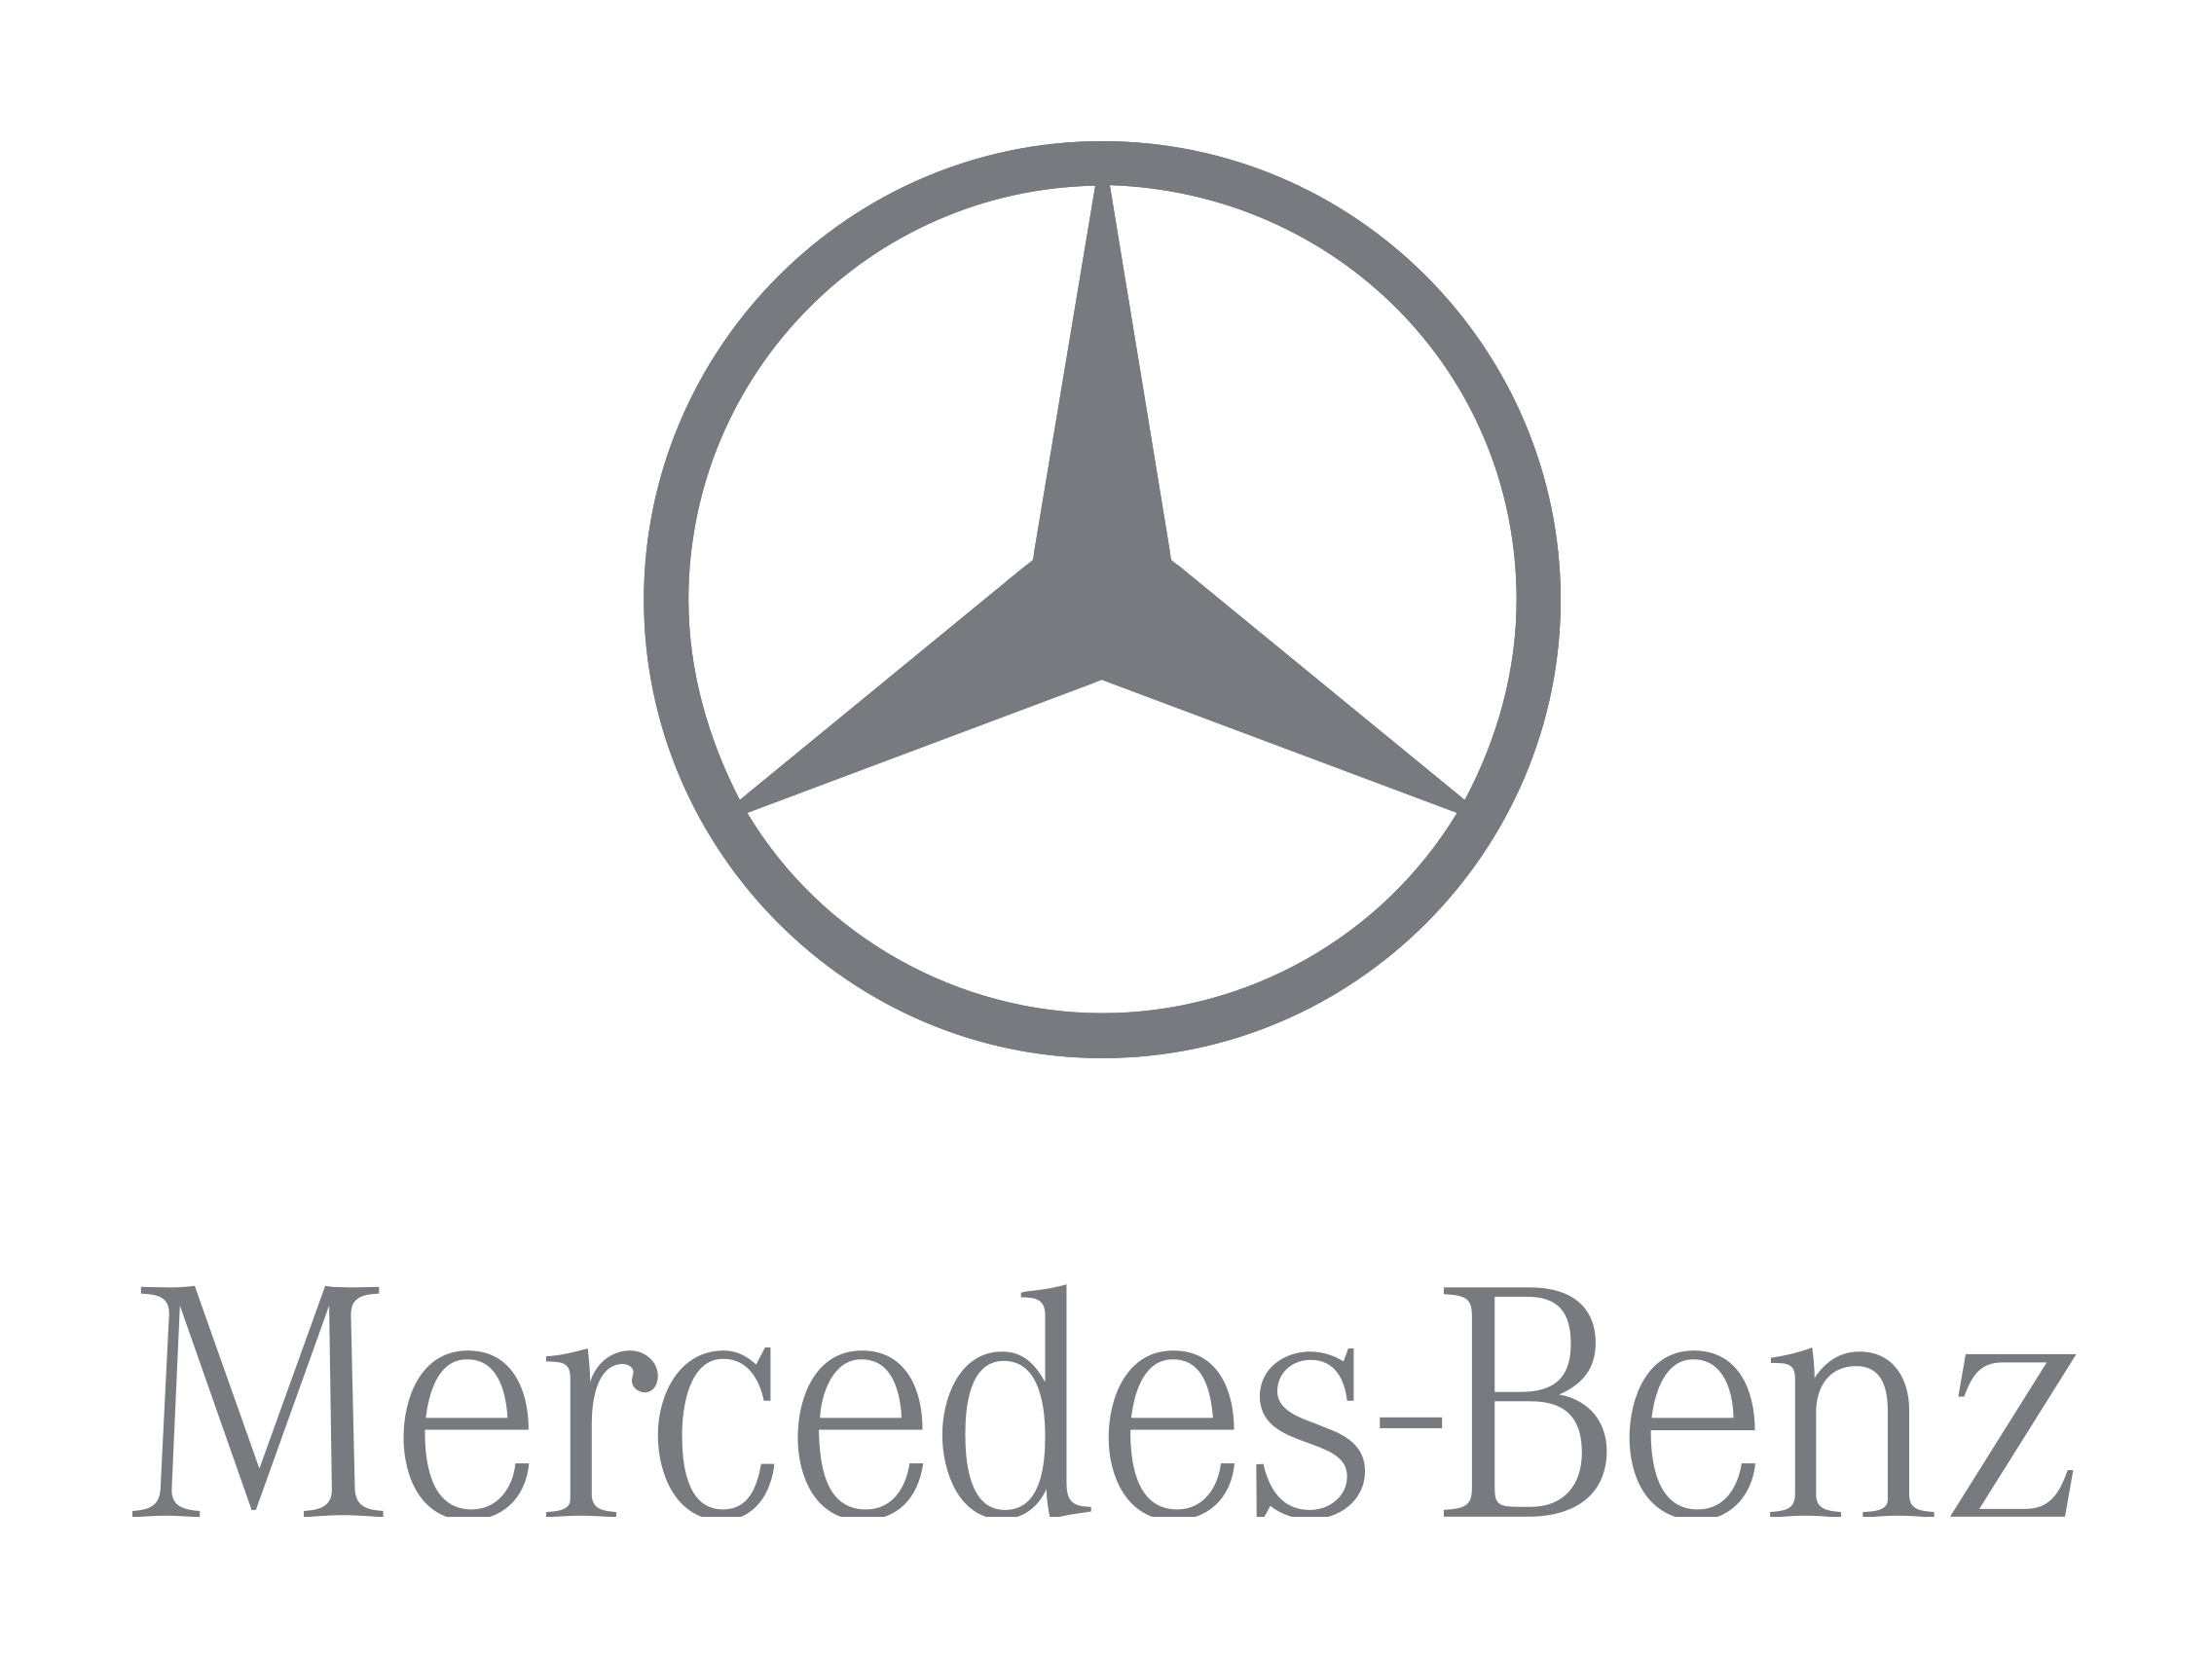 RepairGuideContent in addition Jeep Logo additionally Suit line drawing as well Coloriage Et Dessin De Ninjago A Imprimer as well Mercedes Amg Gt Previewed In Official Sketches. on 2014 white kia